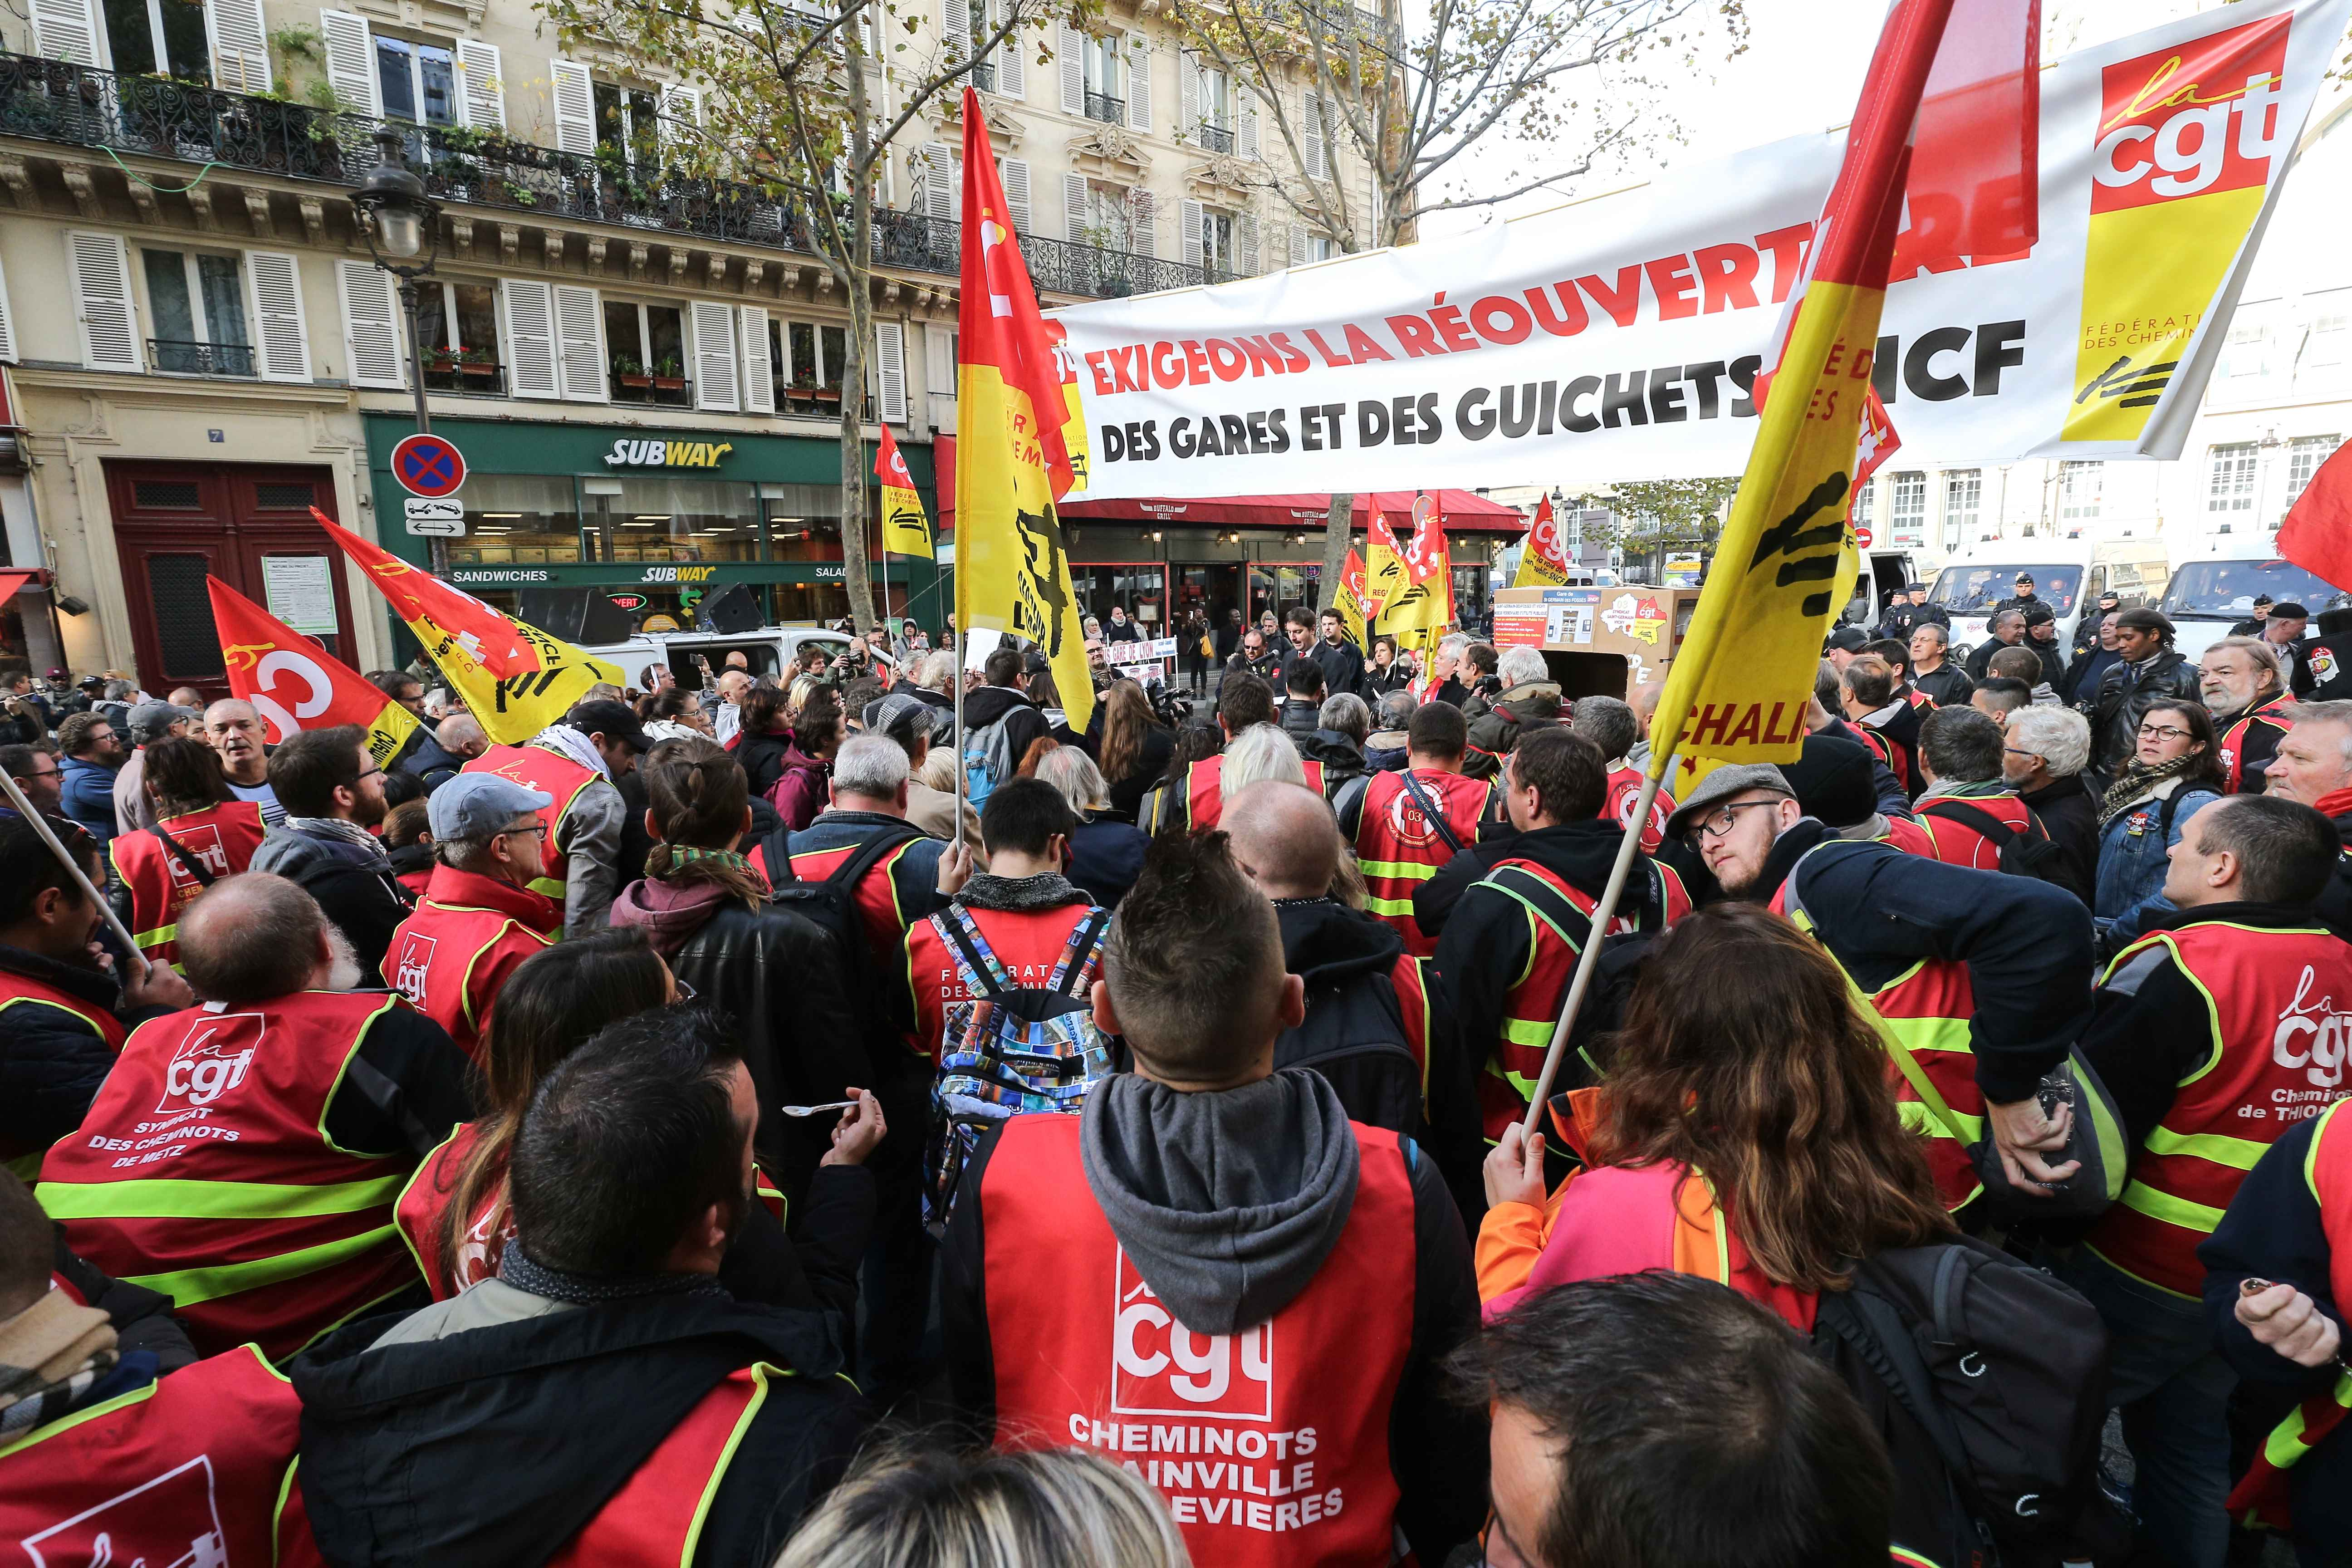 "The CGT union railway workers gather in front of a banner ""Let's demand the reopening of SNCF stations and ticket offices"" as they take part in a demonstration of employees of the state-owned rail operator SNCF called by CG union on November 5, 2019 in fro"